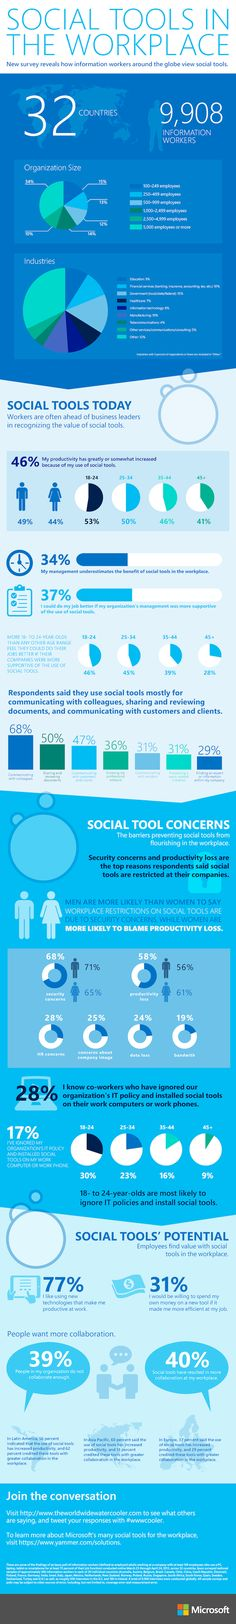 Social Tools in the workplace: How information workers around the globe view social tools. Security concerns and productivity loss are top reasons given for restricting social tools in the workplace. Marketing Digital, Content Marketing, Internet Marketing, Social Media Marketing, Marketing Ideas, E Learning, Info Board, Microsoft, Social Media Tips